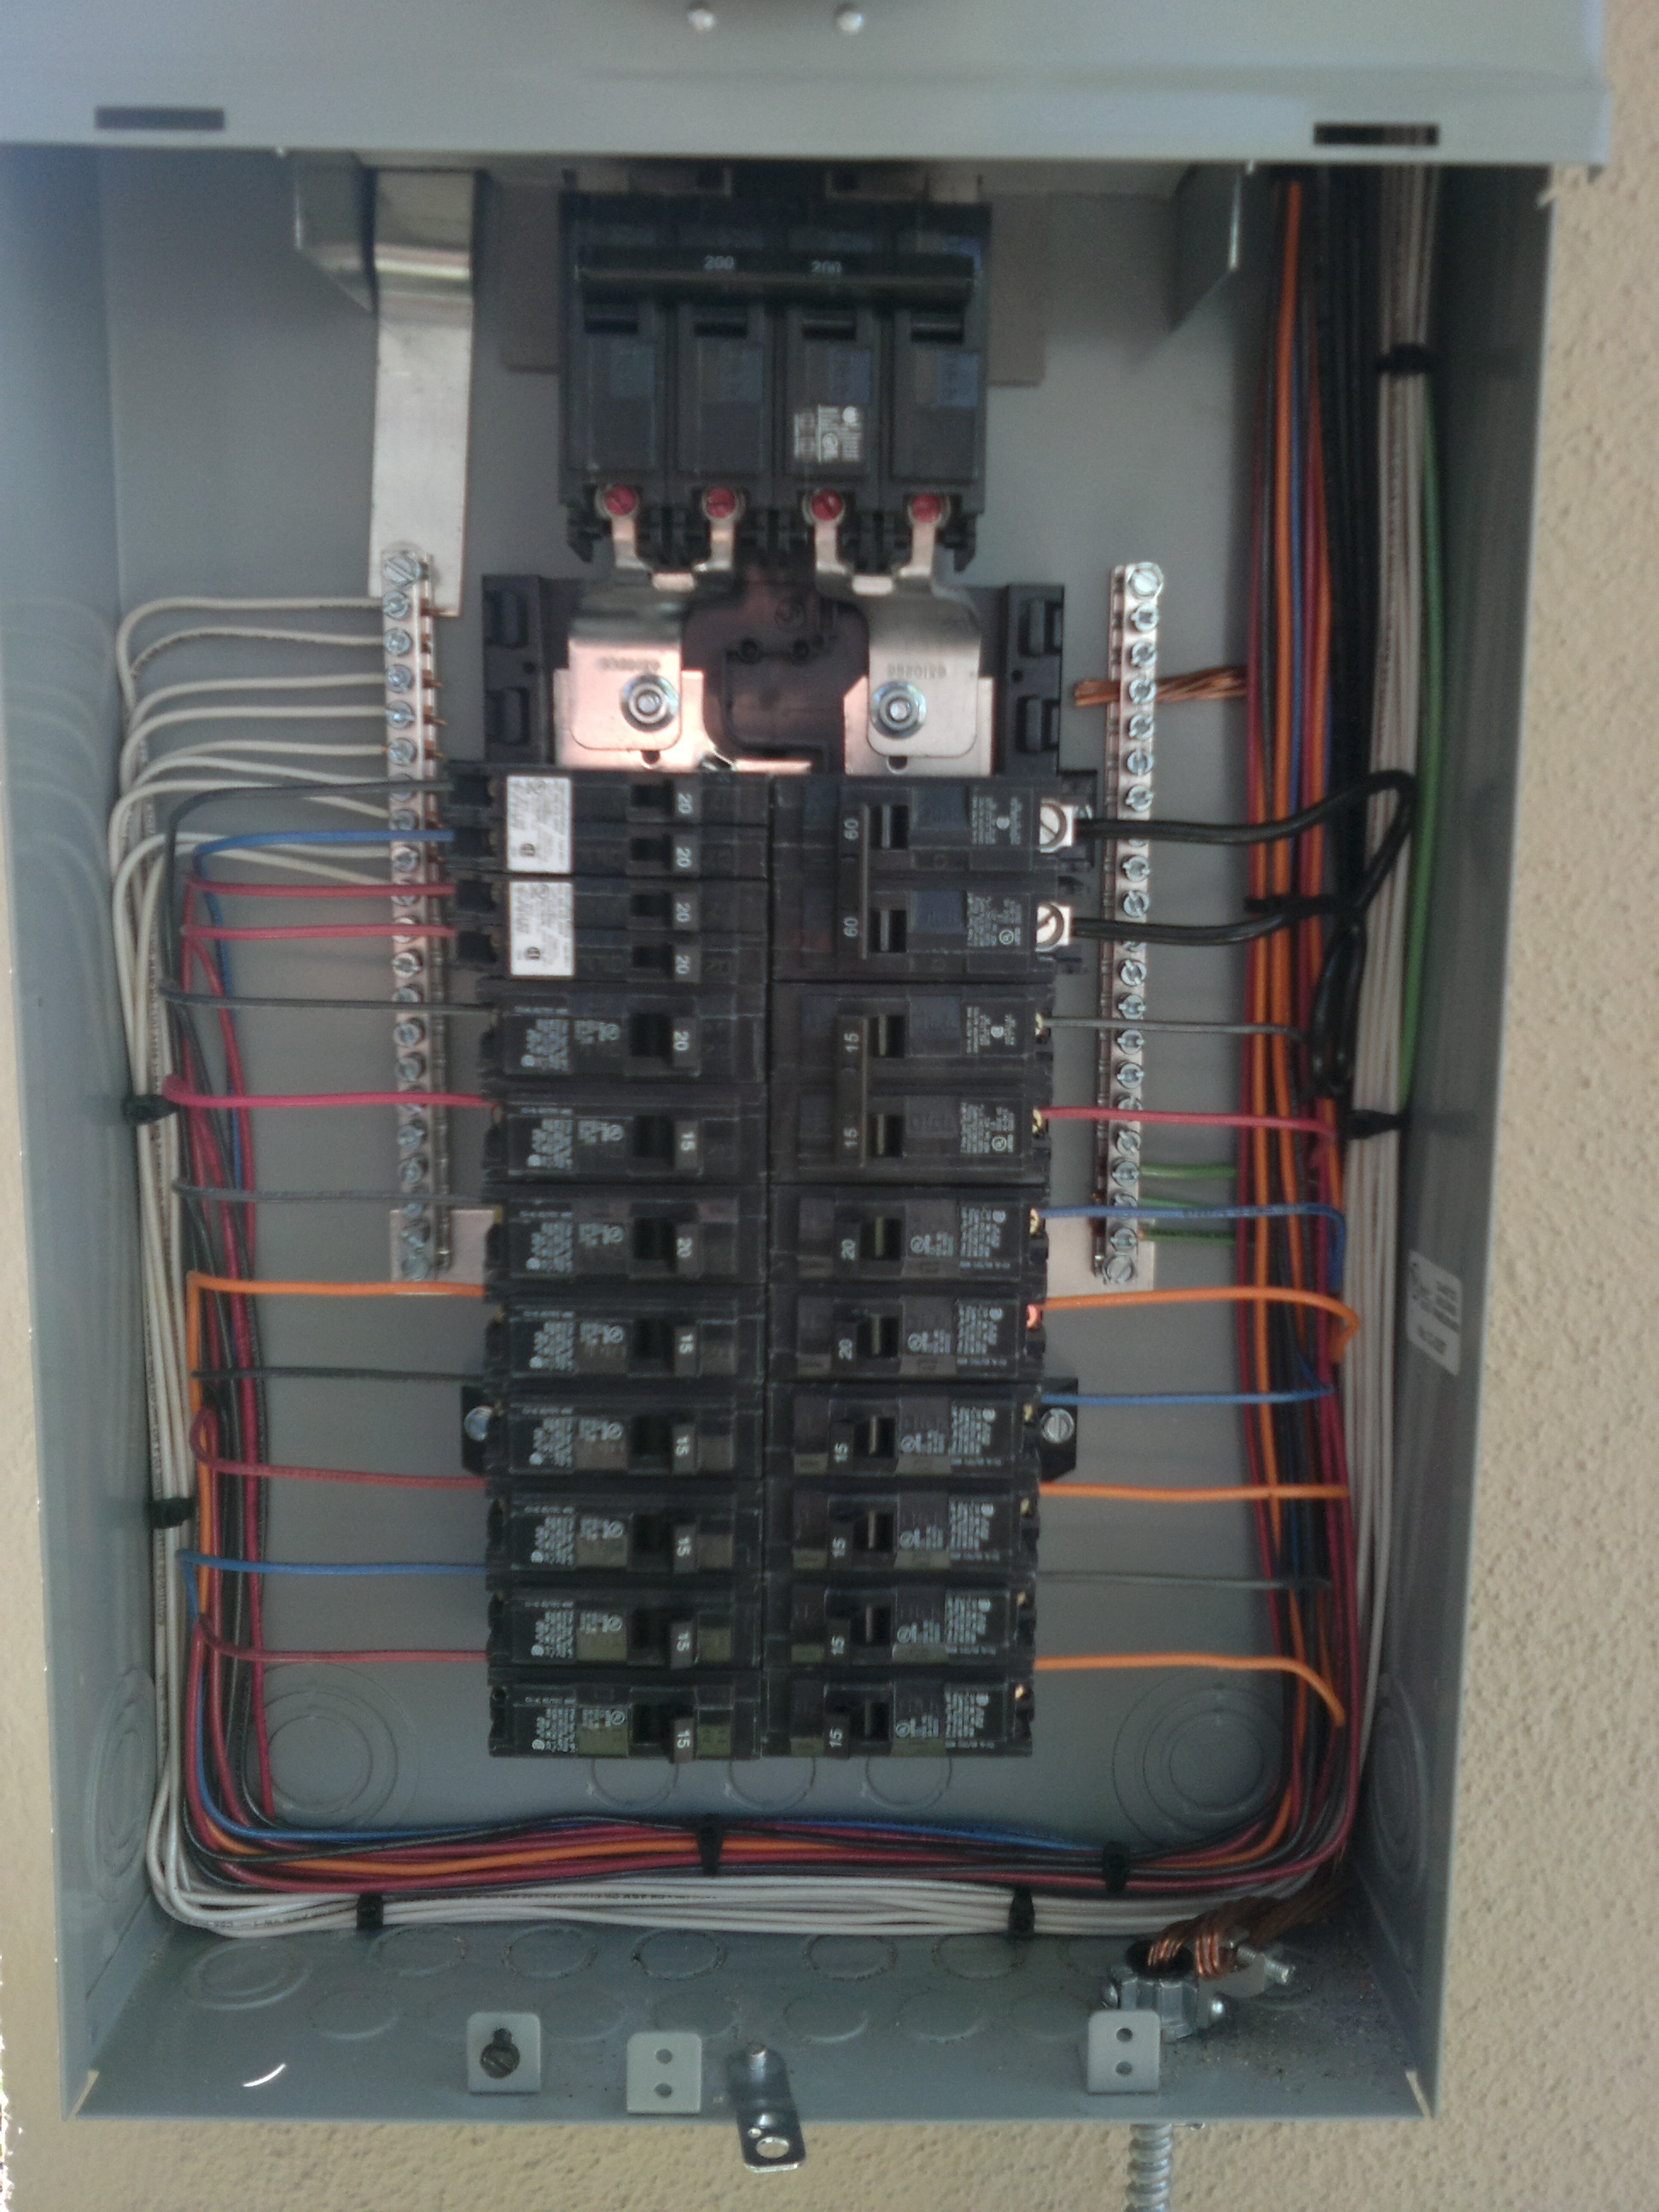 Electrical Breaker Box Wiring Diagram | Wiring Diagram - Electrical Panel Wiring Diagram